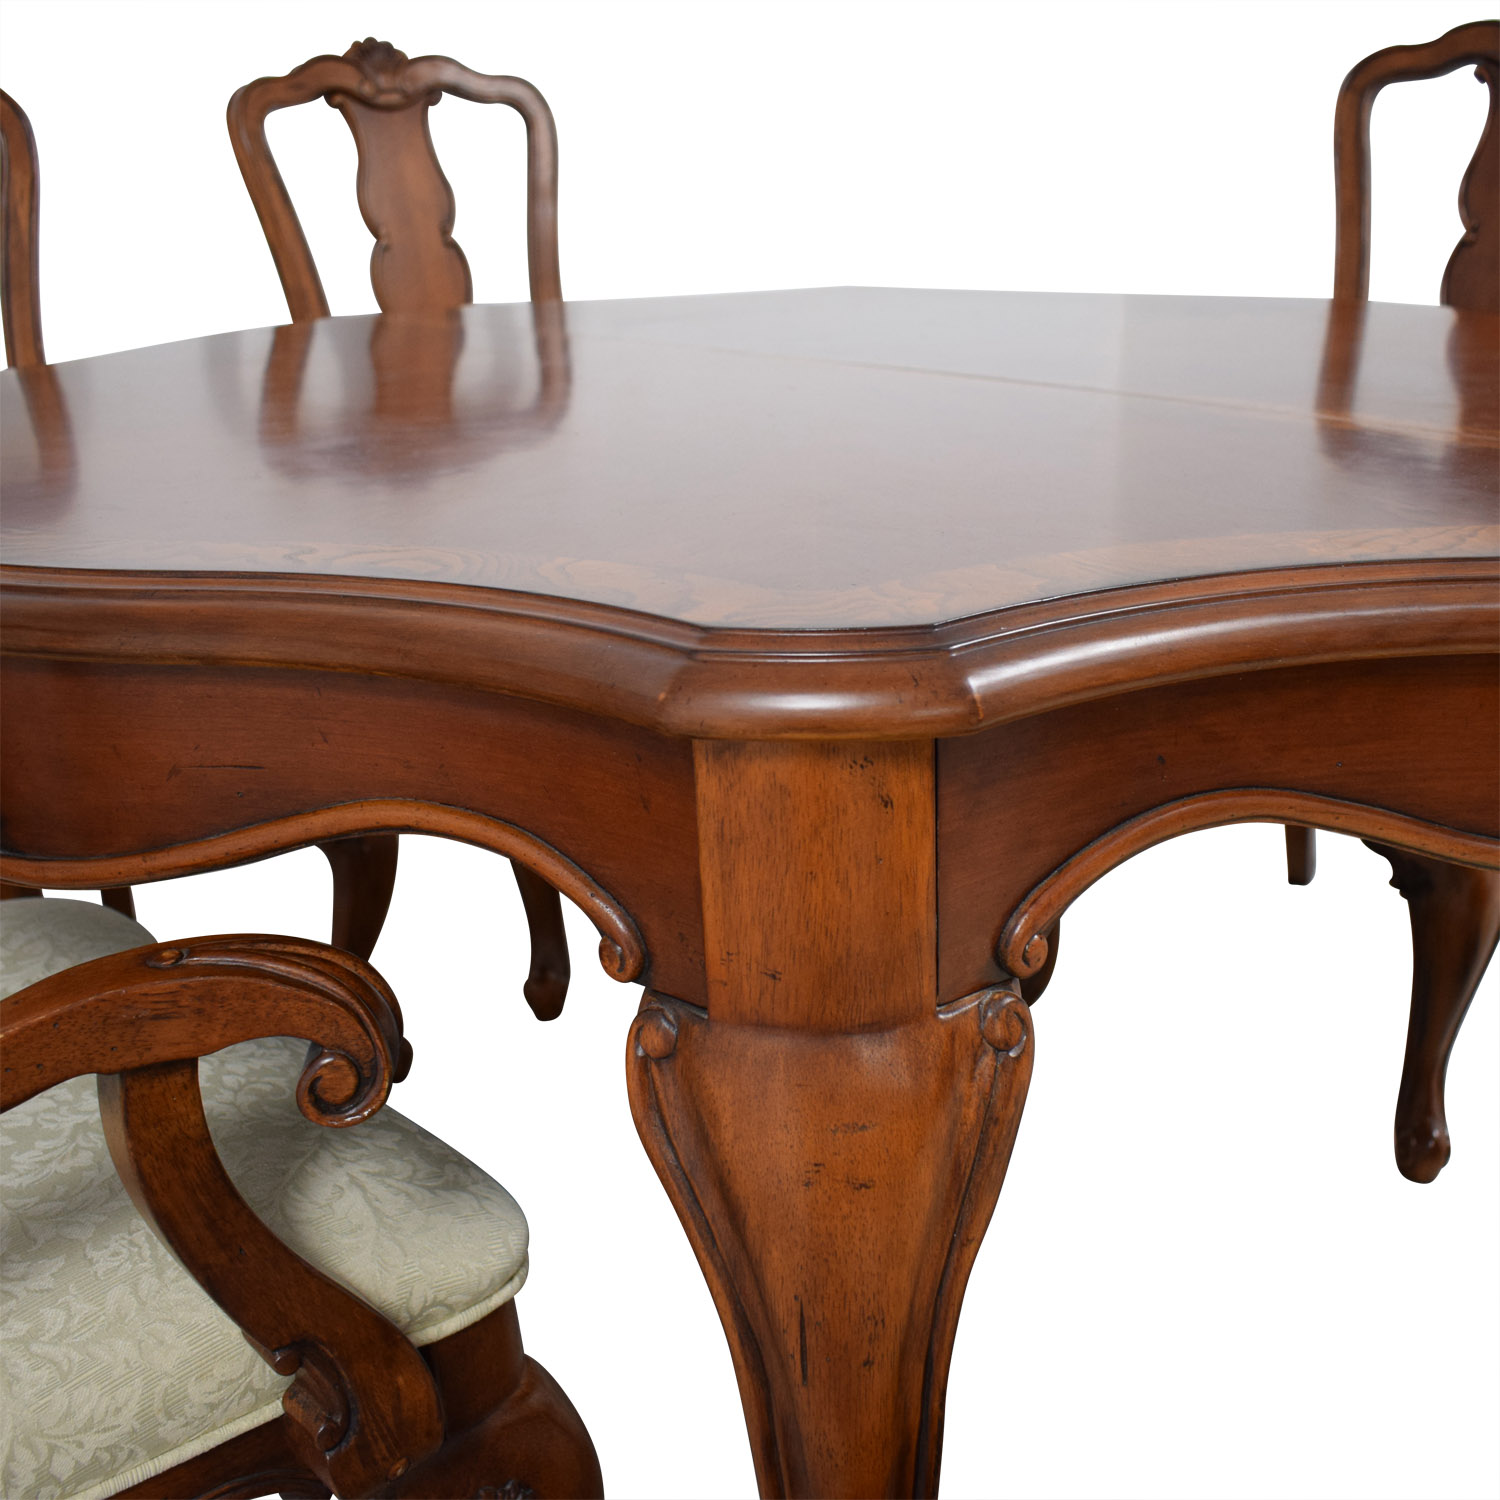 Macy's Macy's Dovetailed Wood Extendable Dining Set